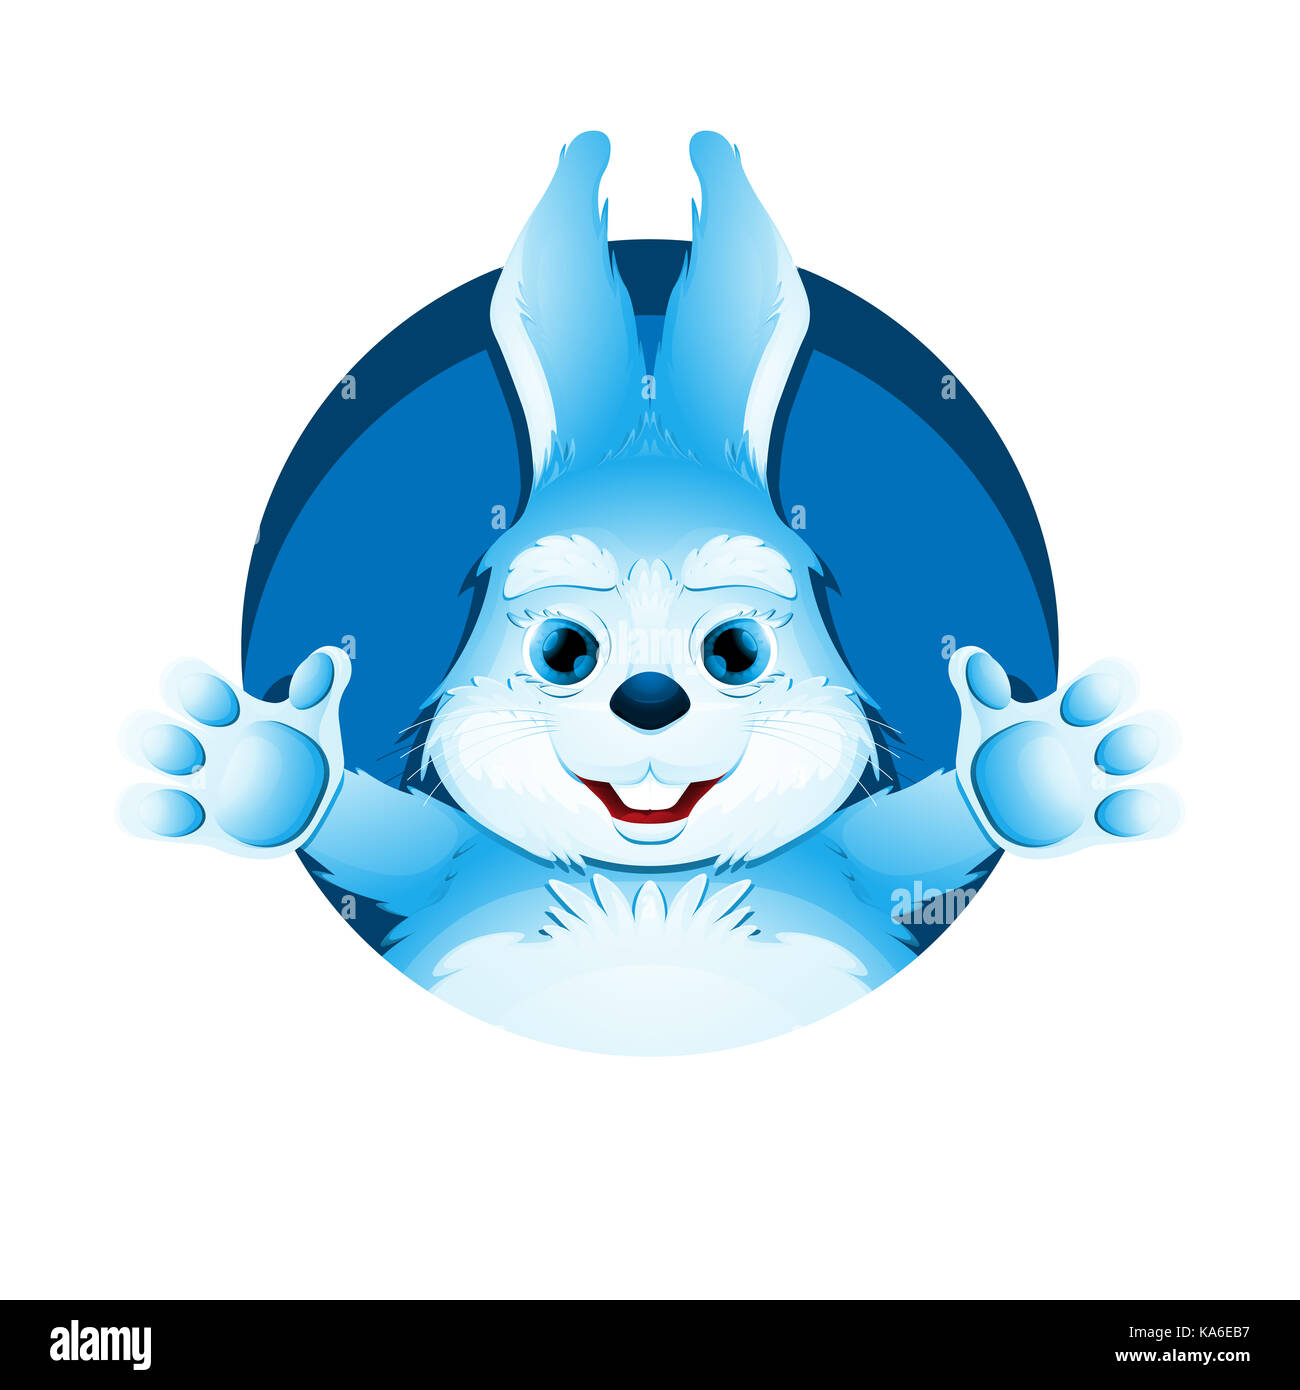 Avatar of cute blue bunny. Portrait of funny rabbit for user profile picture. Stock Photo